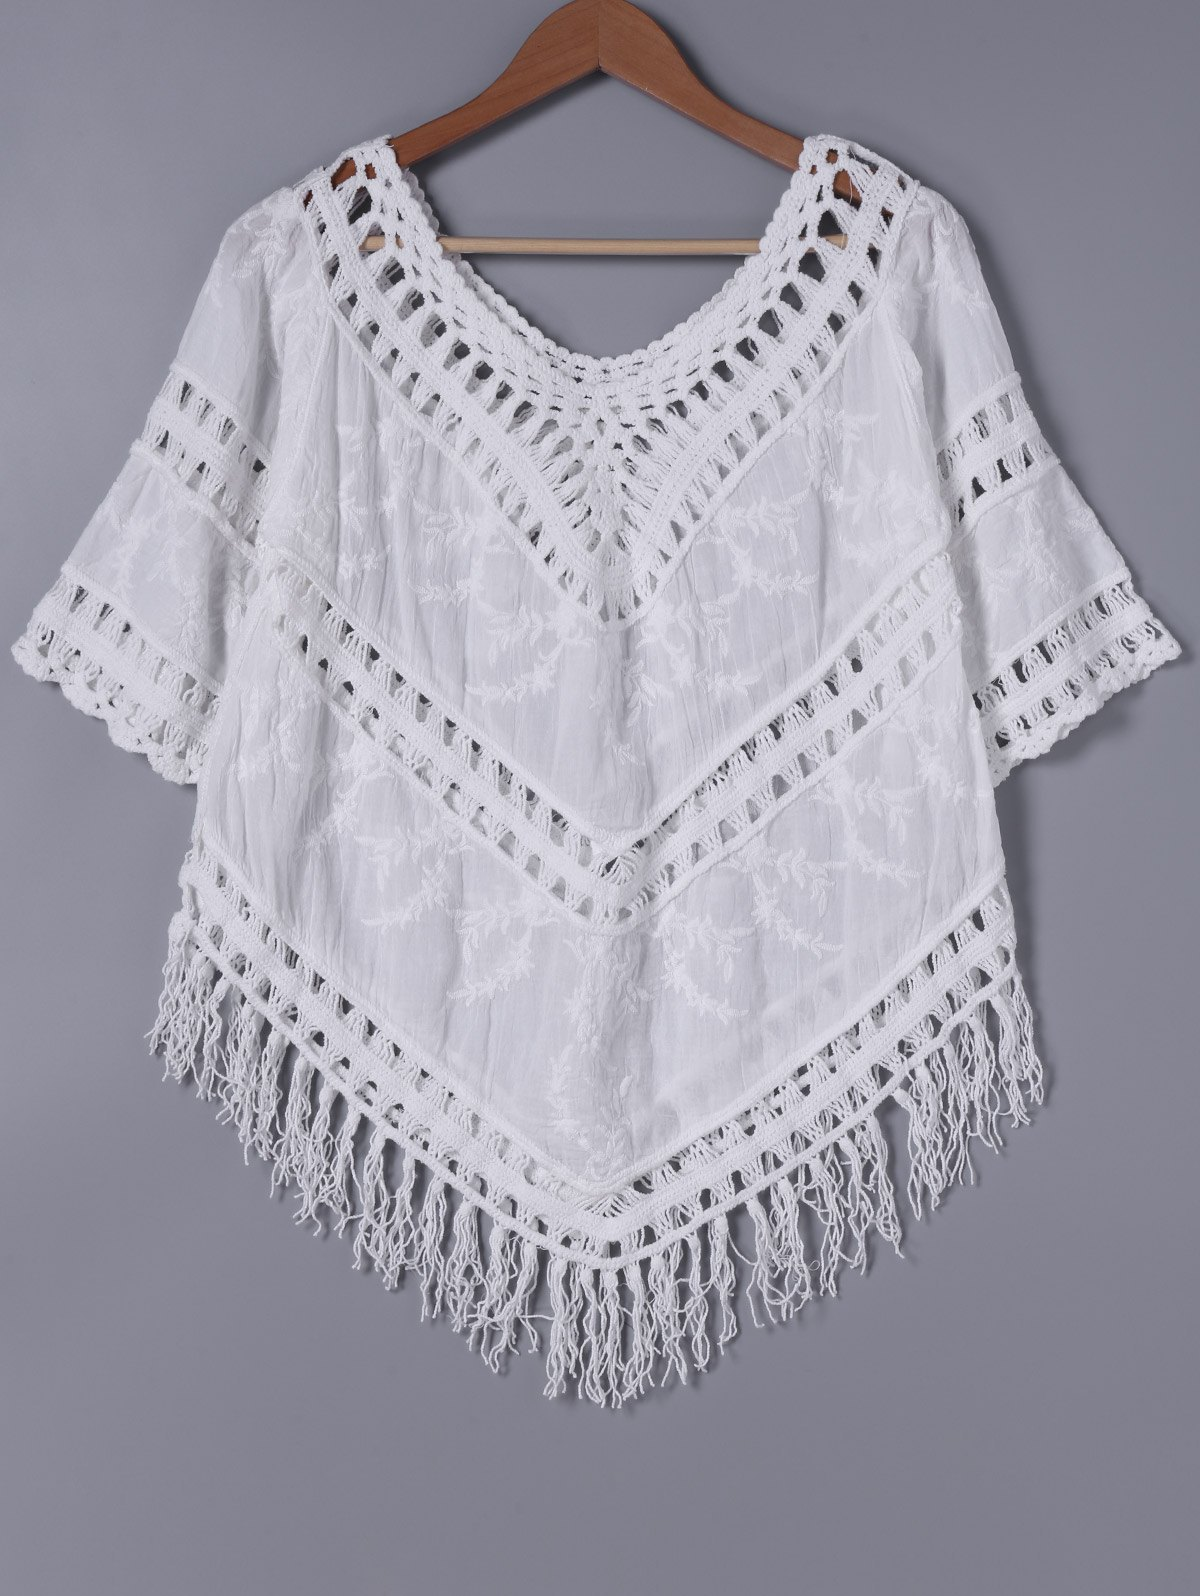 Stylish Women's V-Neck Crochet Panelled Embroidered Fringe Blouse touch switch 2 way 1 gang black white crystal glass switch panel wall light touch screen switch 110 220v ac hot